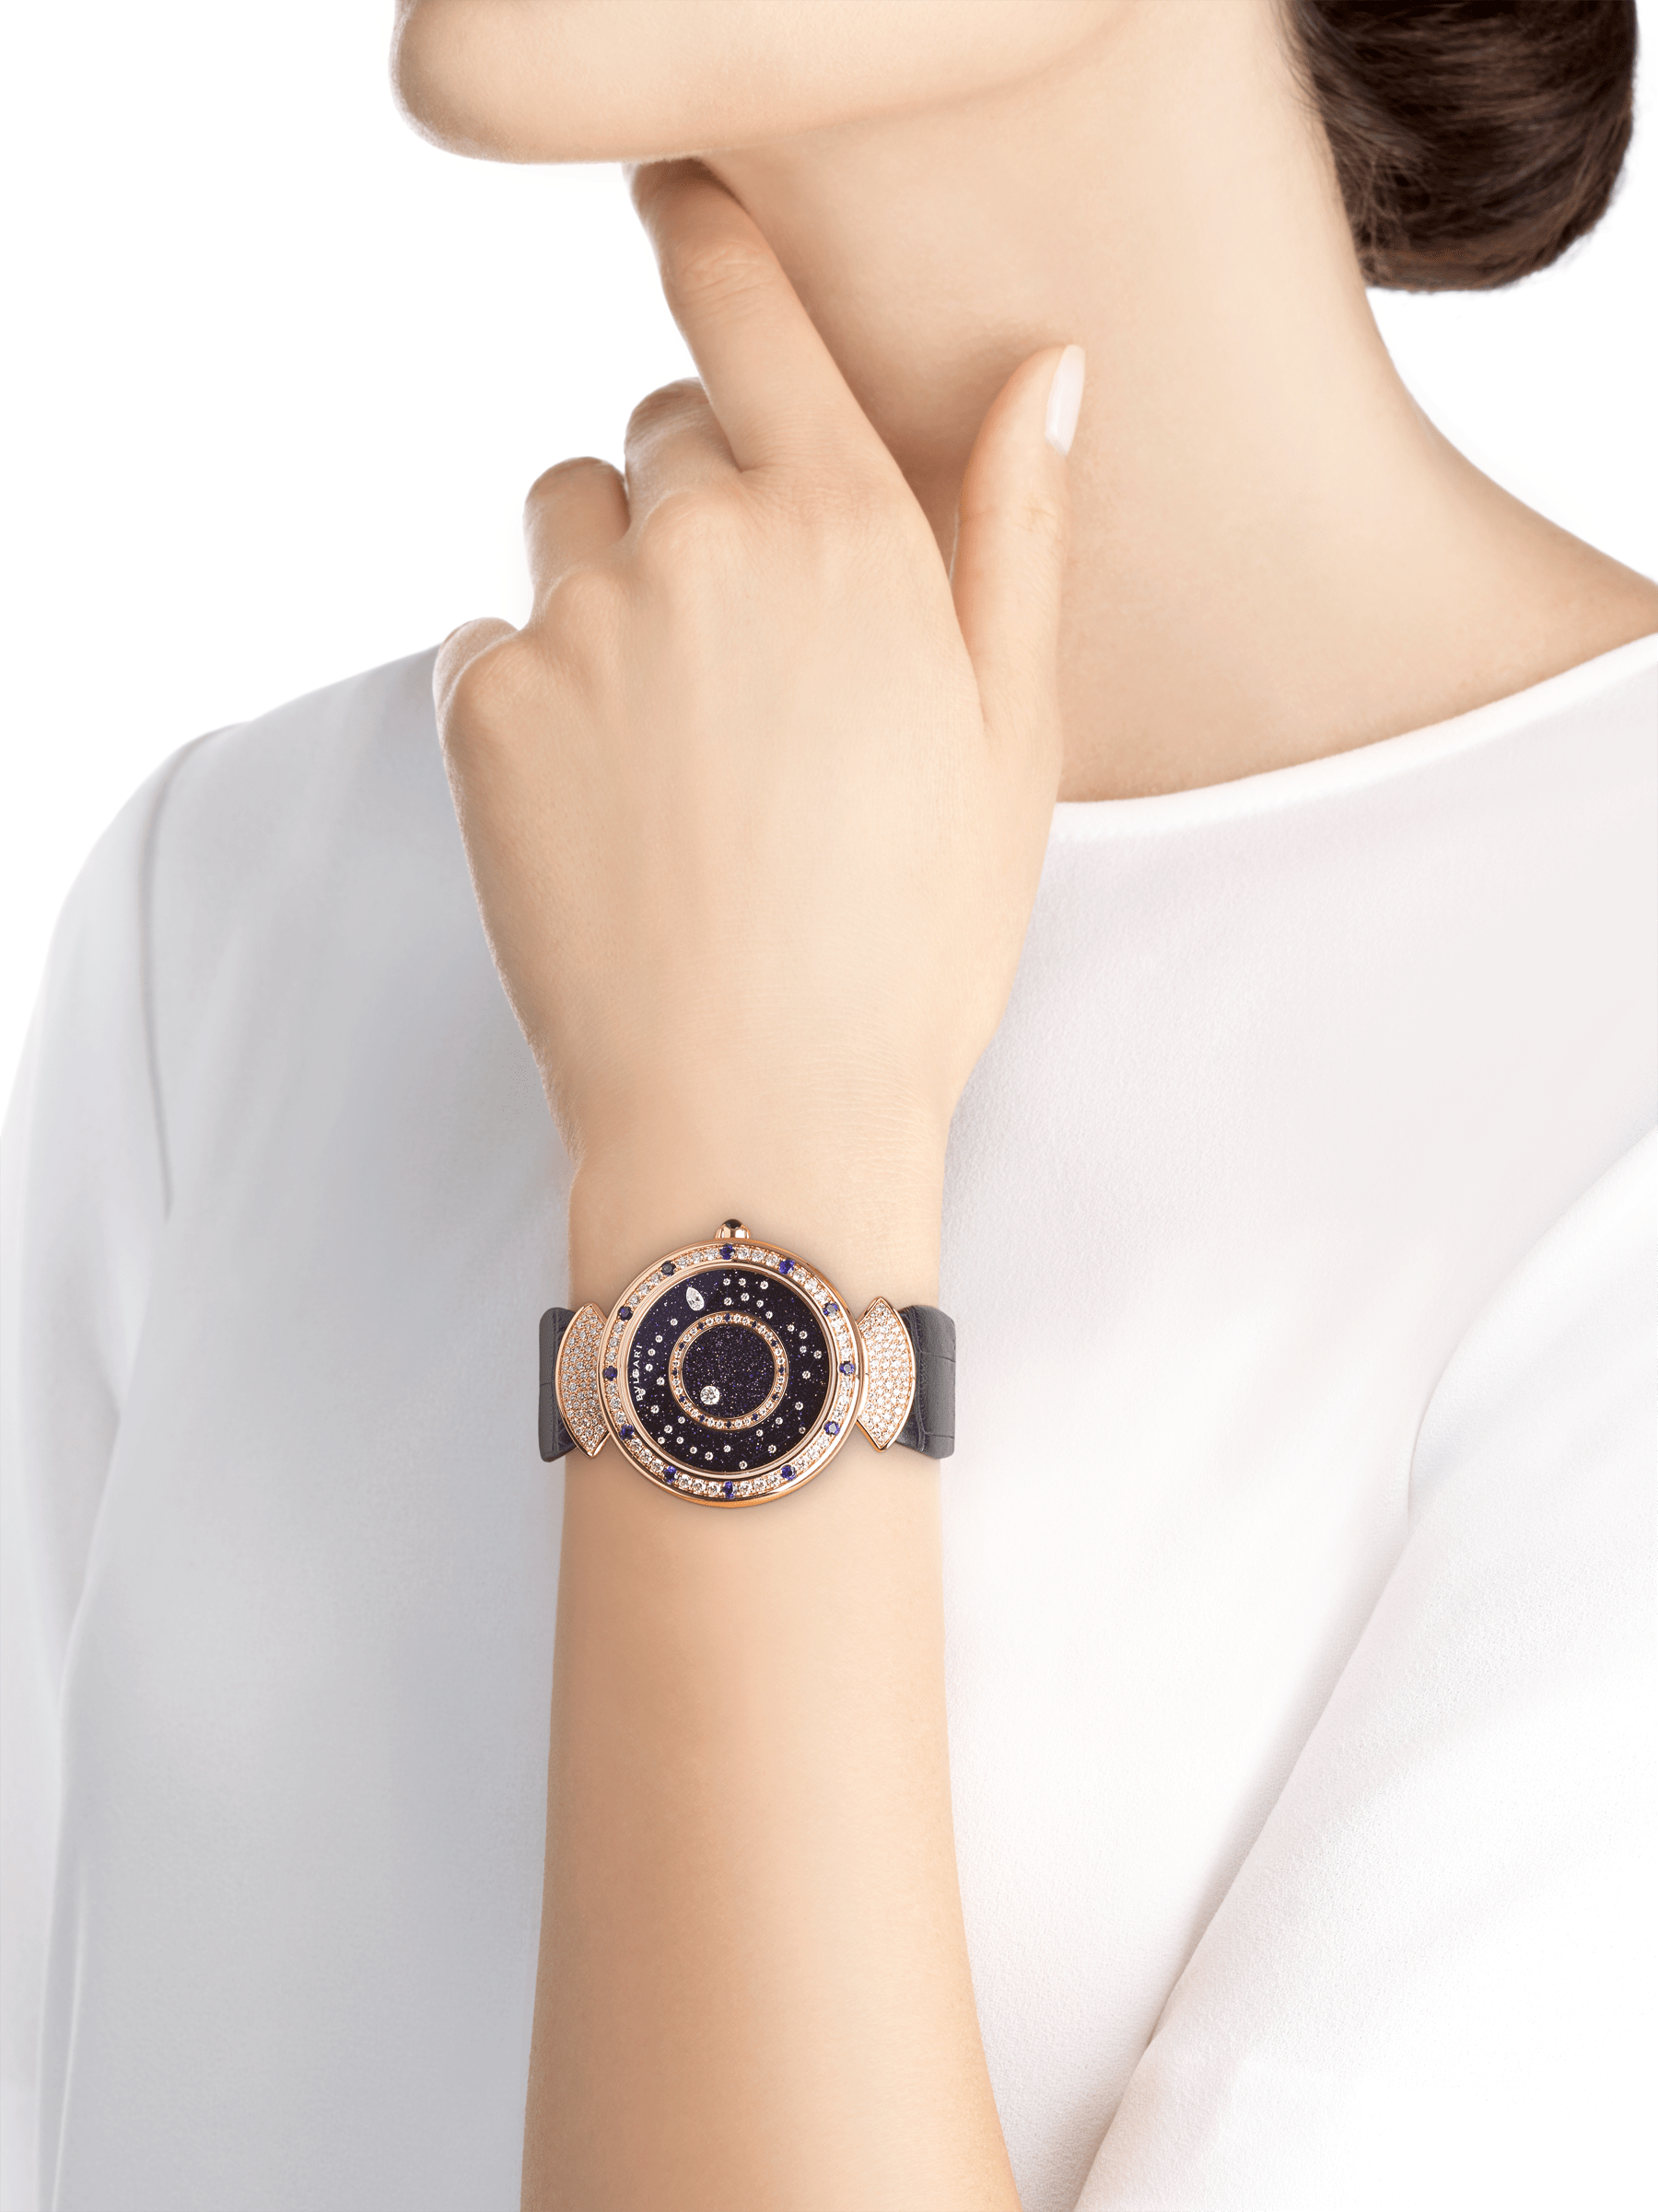 DIVAS' DREAM watch with mechanical manufacture movement, automatic winding, 18 kt rose gold case set with round brilliant-cut diamonds and sapphires, aventurine rotating discs with diamonds and printed constellations and dark blue alligator bracelet 102843 image 5